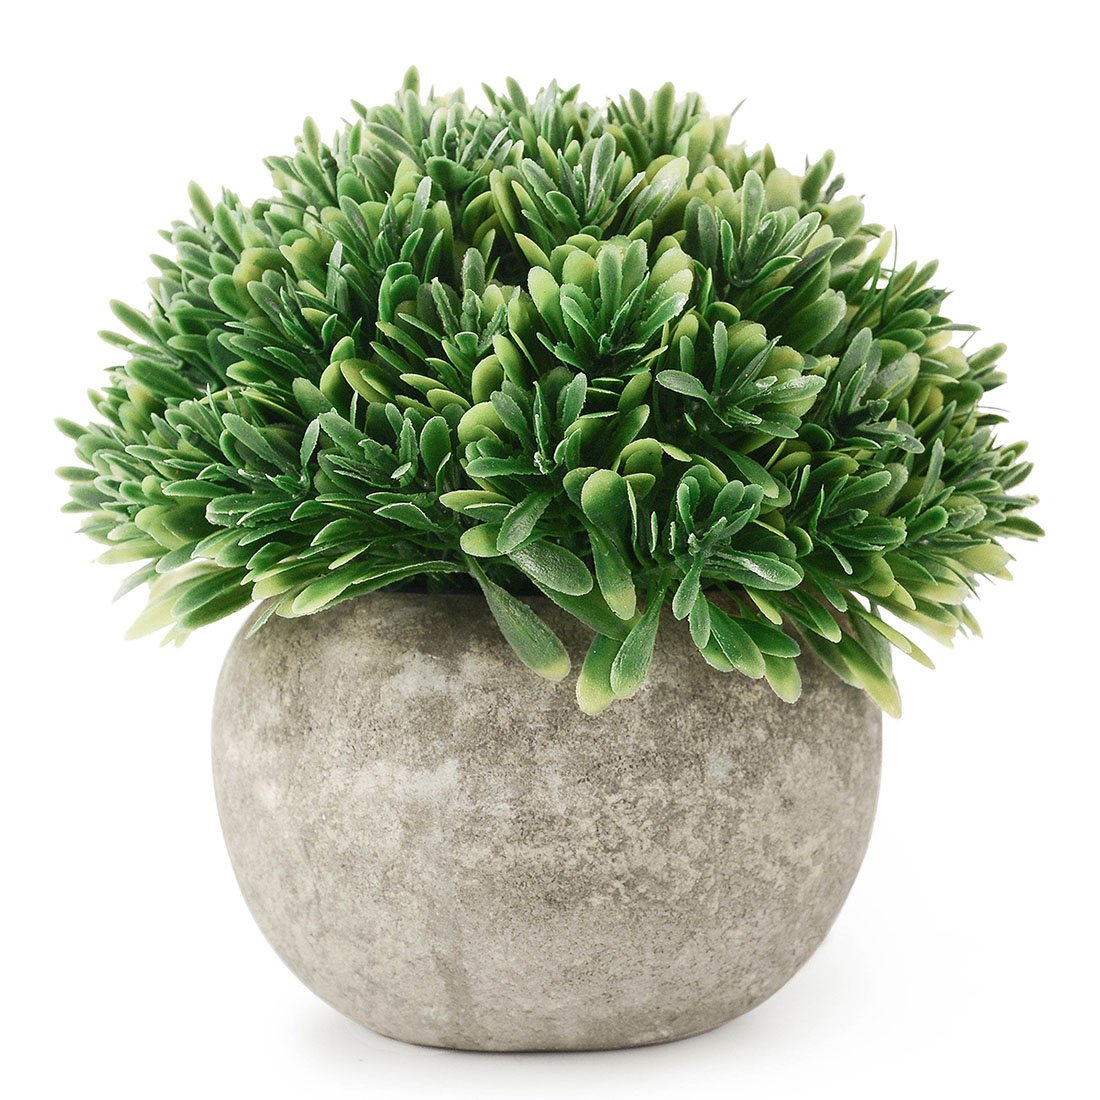 Kumii Artificial Plastic Potted Plant Small Topiary Plants in Pot, Desk Office Living Room Decoration (Green Leaf) by Kumii